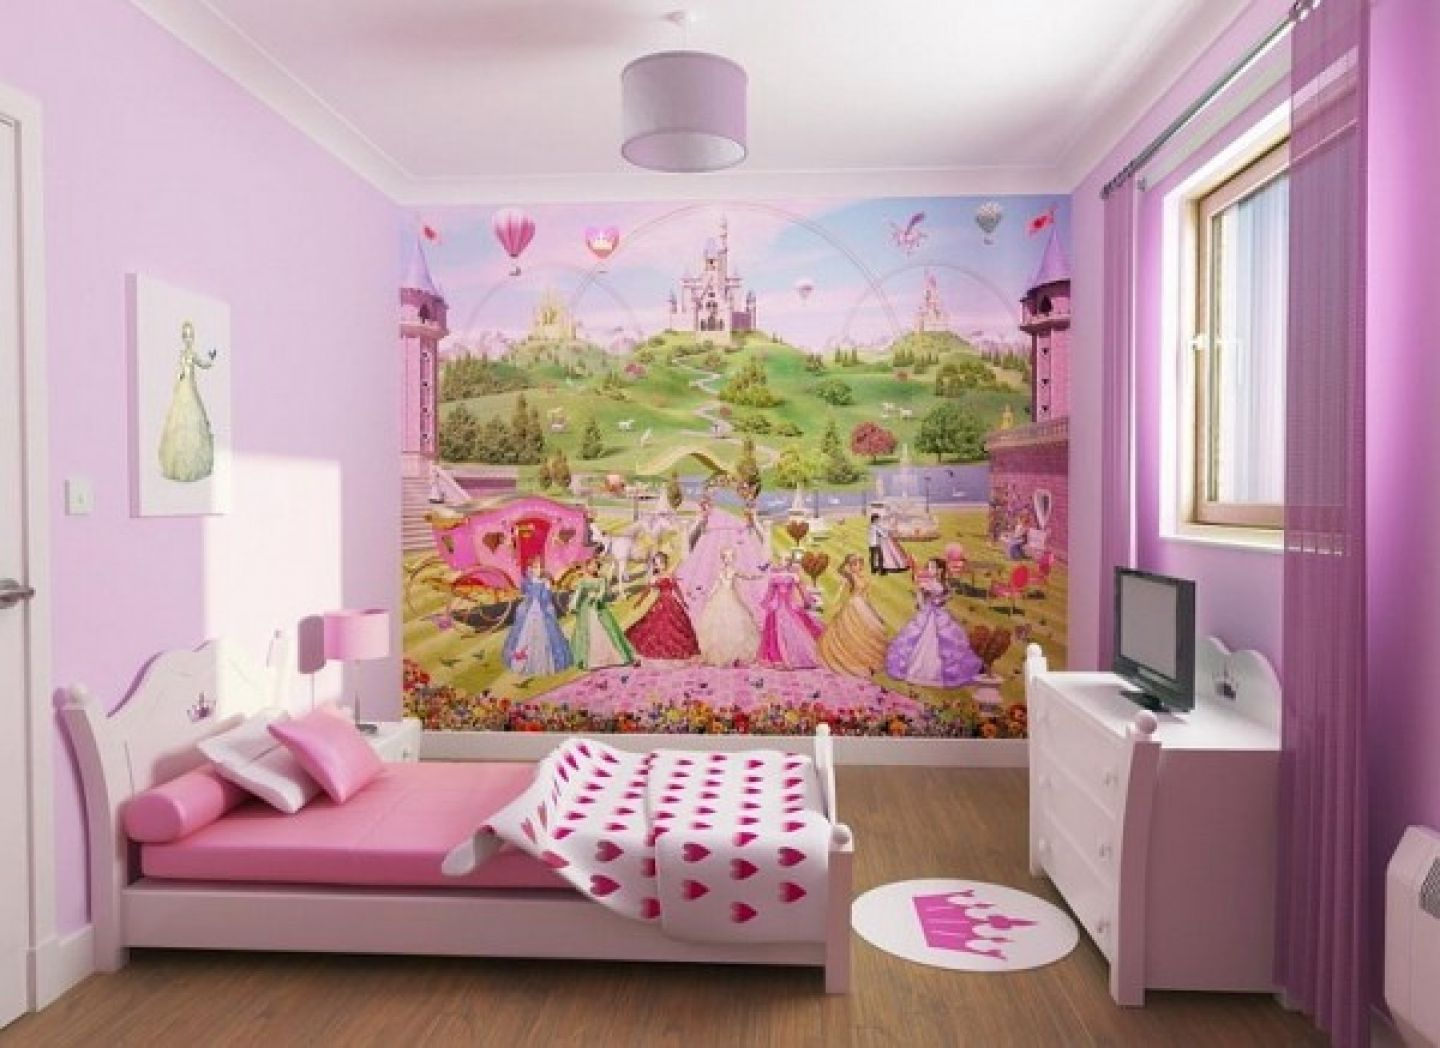 Explore Girls Bedroom Decorating And More! Part 42